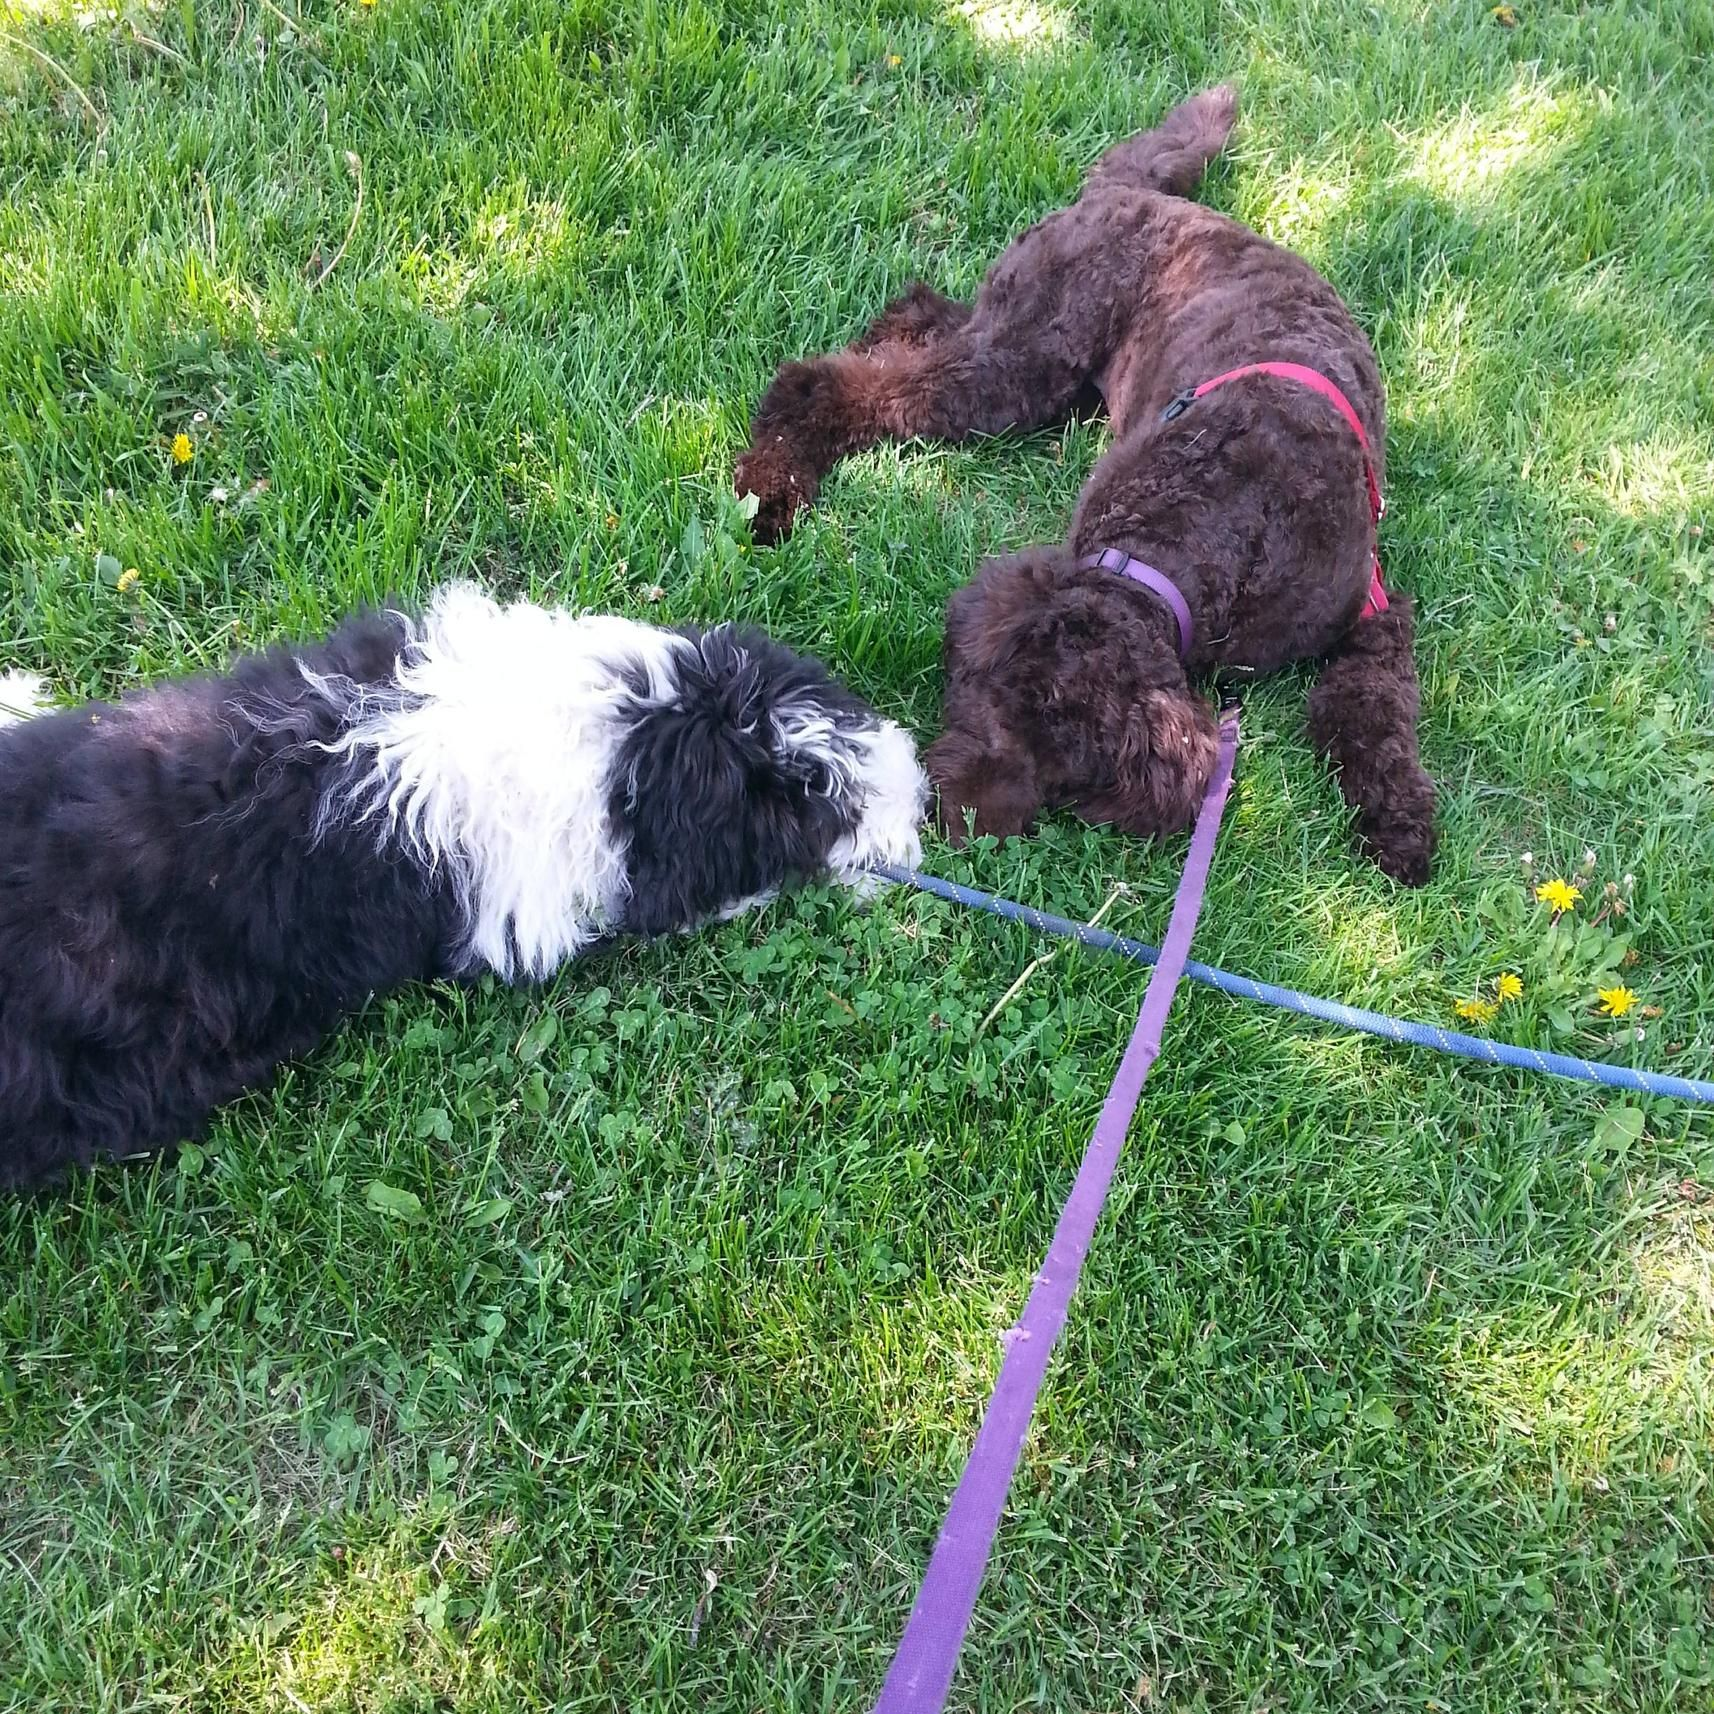 Two puppers in love at the park